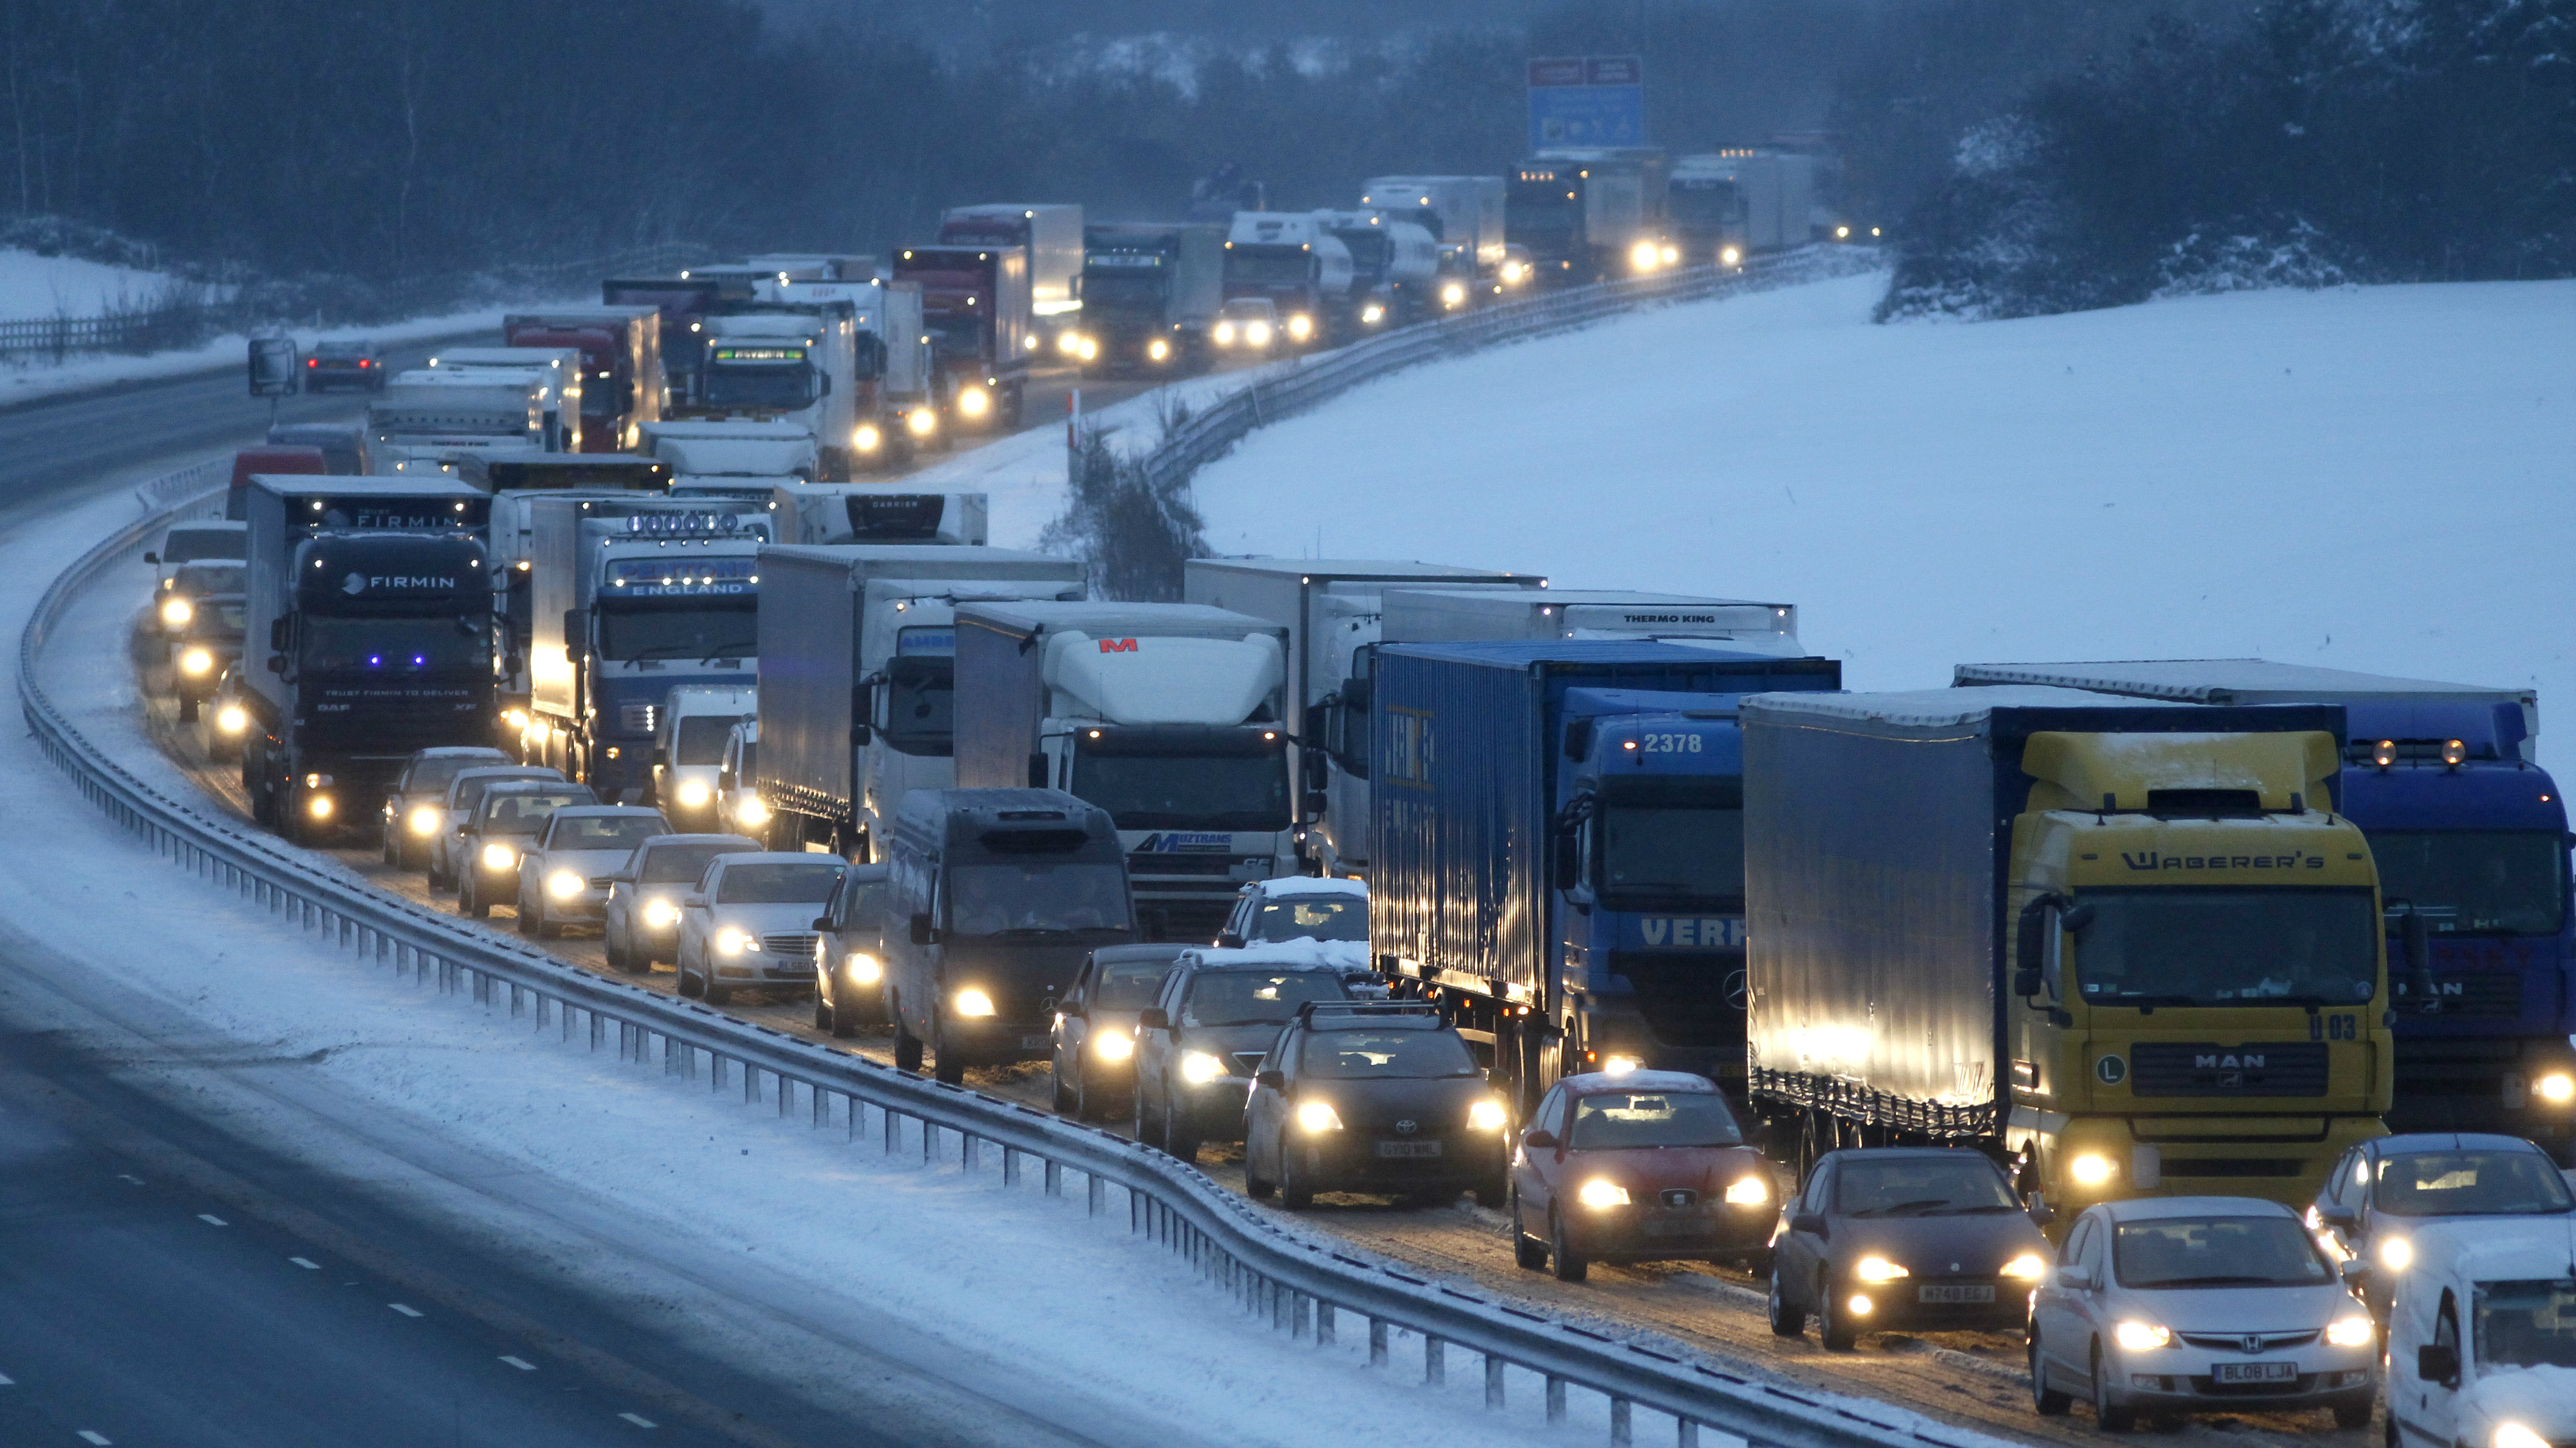 DATE IMPORTED:December 01, 2010Traffic queues around the M25 in Kent as snow causes travel chaos in southern England December 1, 2010. Heavy snow grounded all flights at Gatwick airport on Wednesday, while the worst early winter weather in almost two decades also caused severe delays on roads and rail lines up and down Britain. REUTERS/Luke MacGregor (BRITAIN - Tags: ENVIRONMENT TRANSPORT)